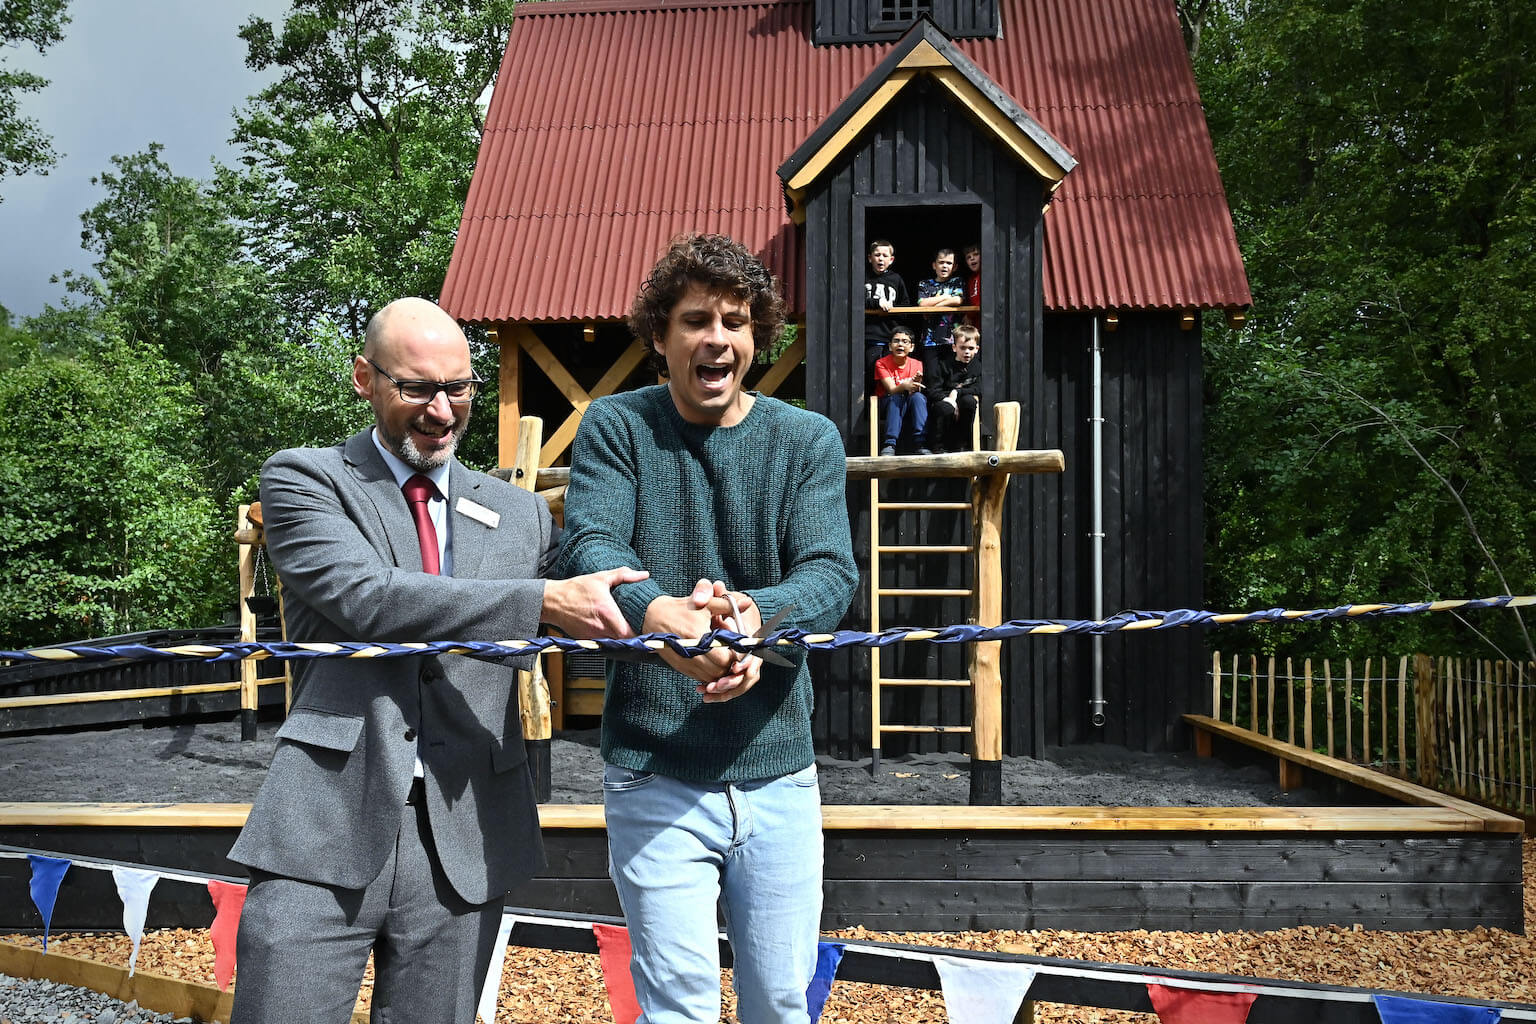 Andy Day and Nick Ralls Cut the ribbon to open The Madeley Wood Co. Outdoor Adventure by CAP.Co